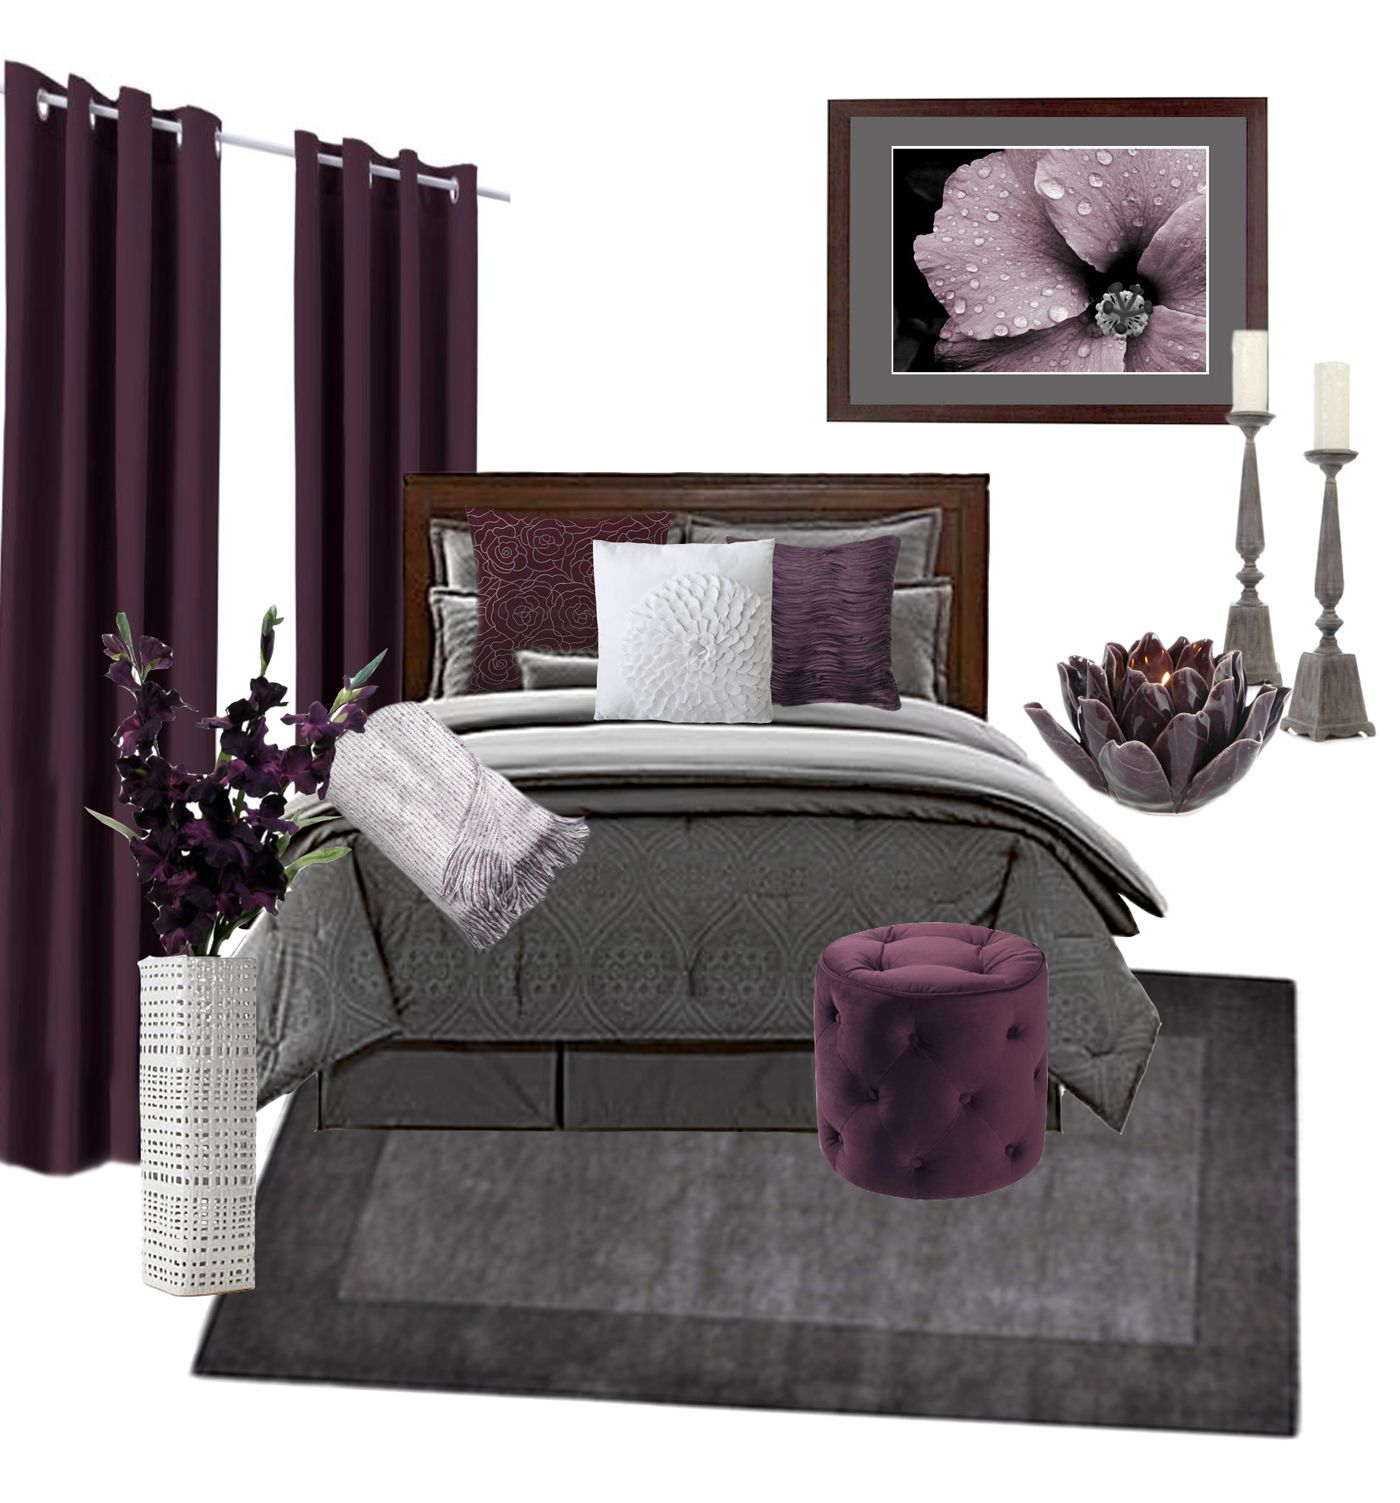 Best 25 College Apartment Bedrooms Ideas On Pinterest: Best 25+ Plum Bedding Ideas On Pinterest